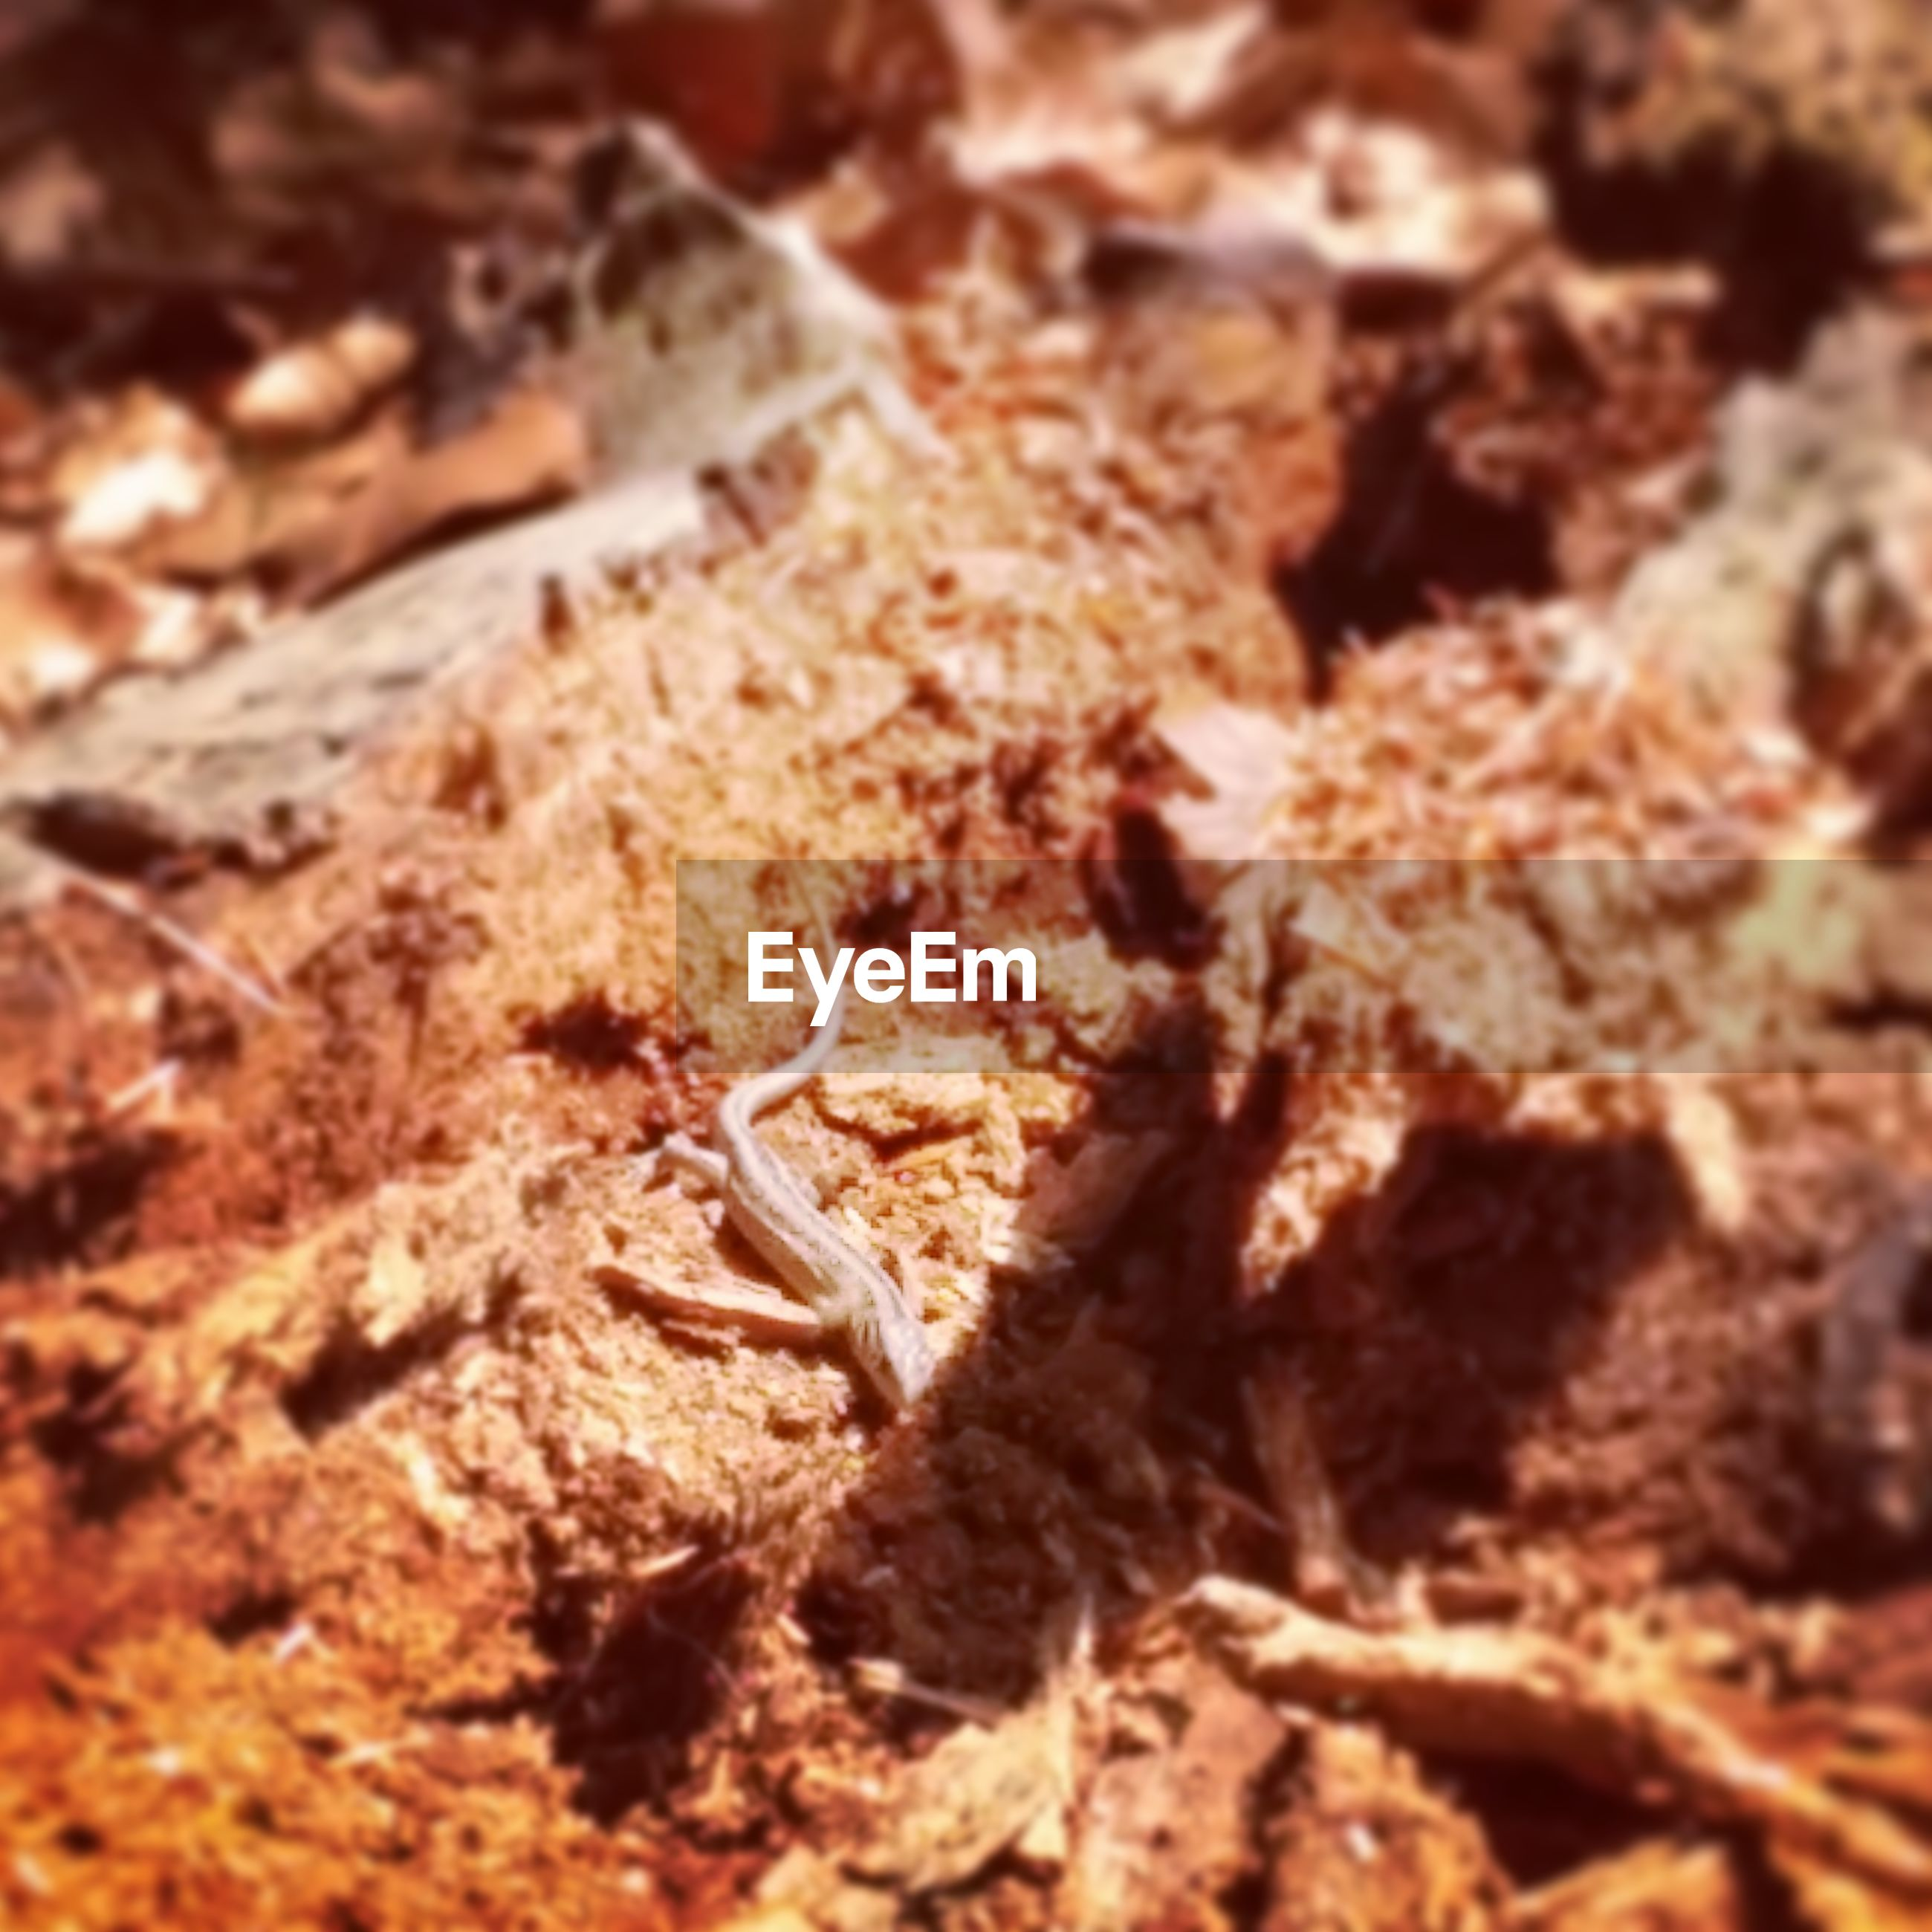 textured, selective focus, close-up, rough, nature, rock - object, full frame, backgrounds, brown, high angle view, dry, outdoors, no people, day, focus on foreground, sunlight, field, natural pattern, rock, ground